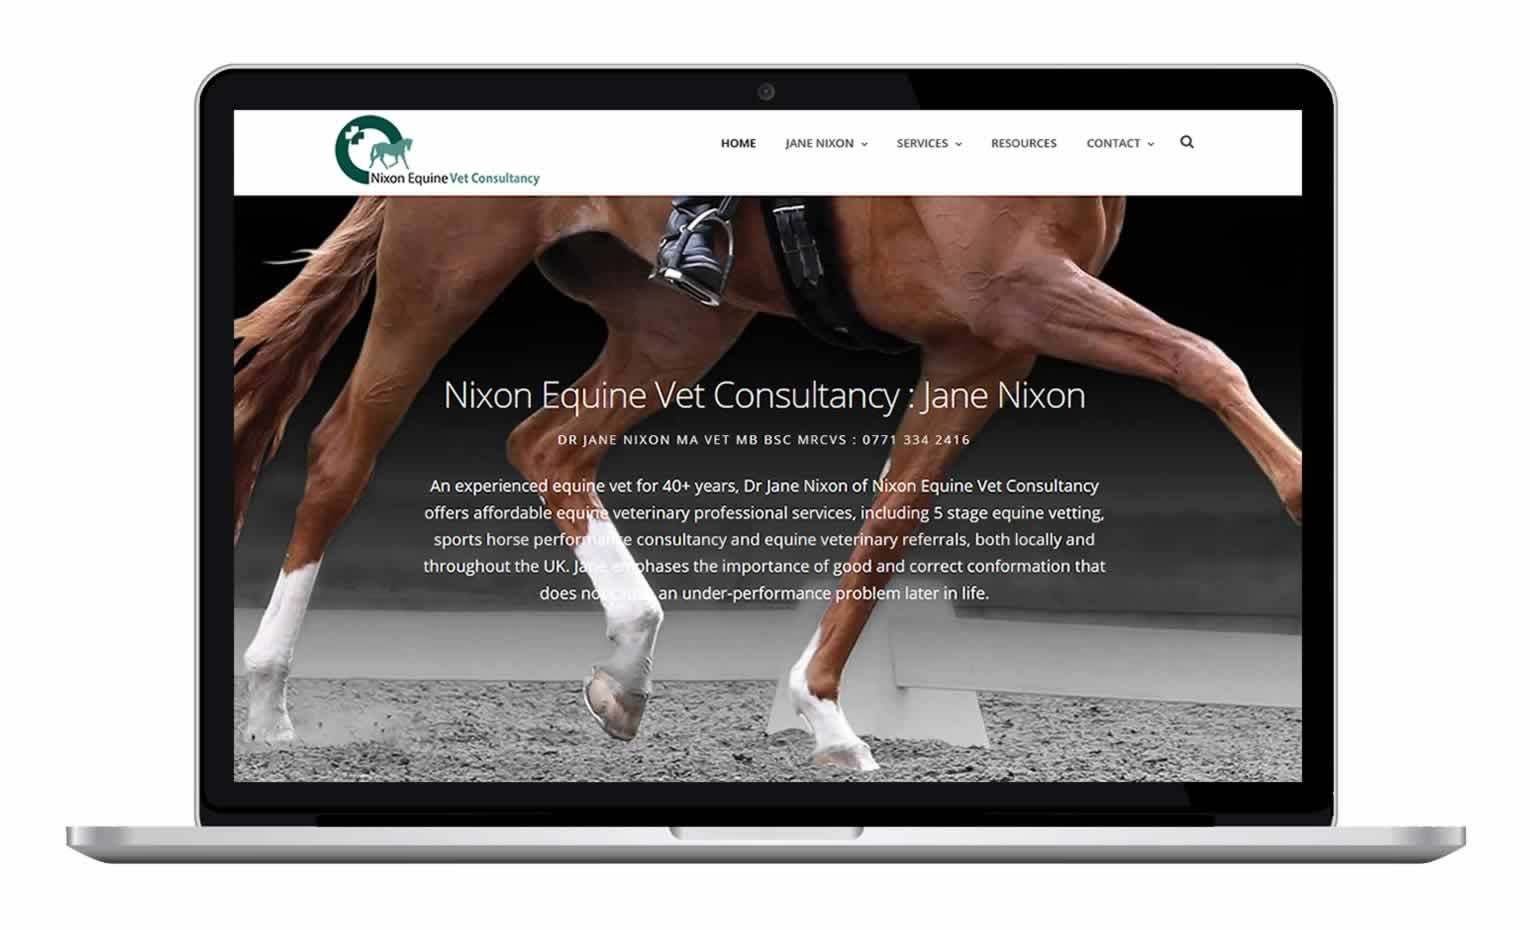 Nixon Equine Vet - Equine Veterinary Surgeon Website